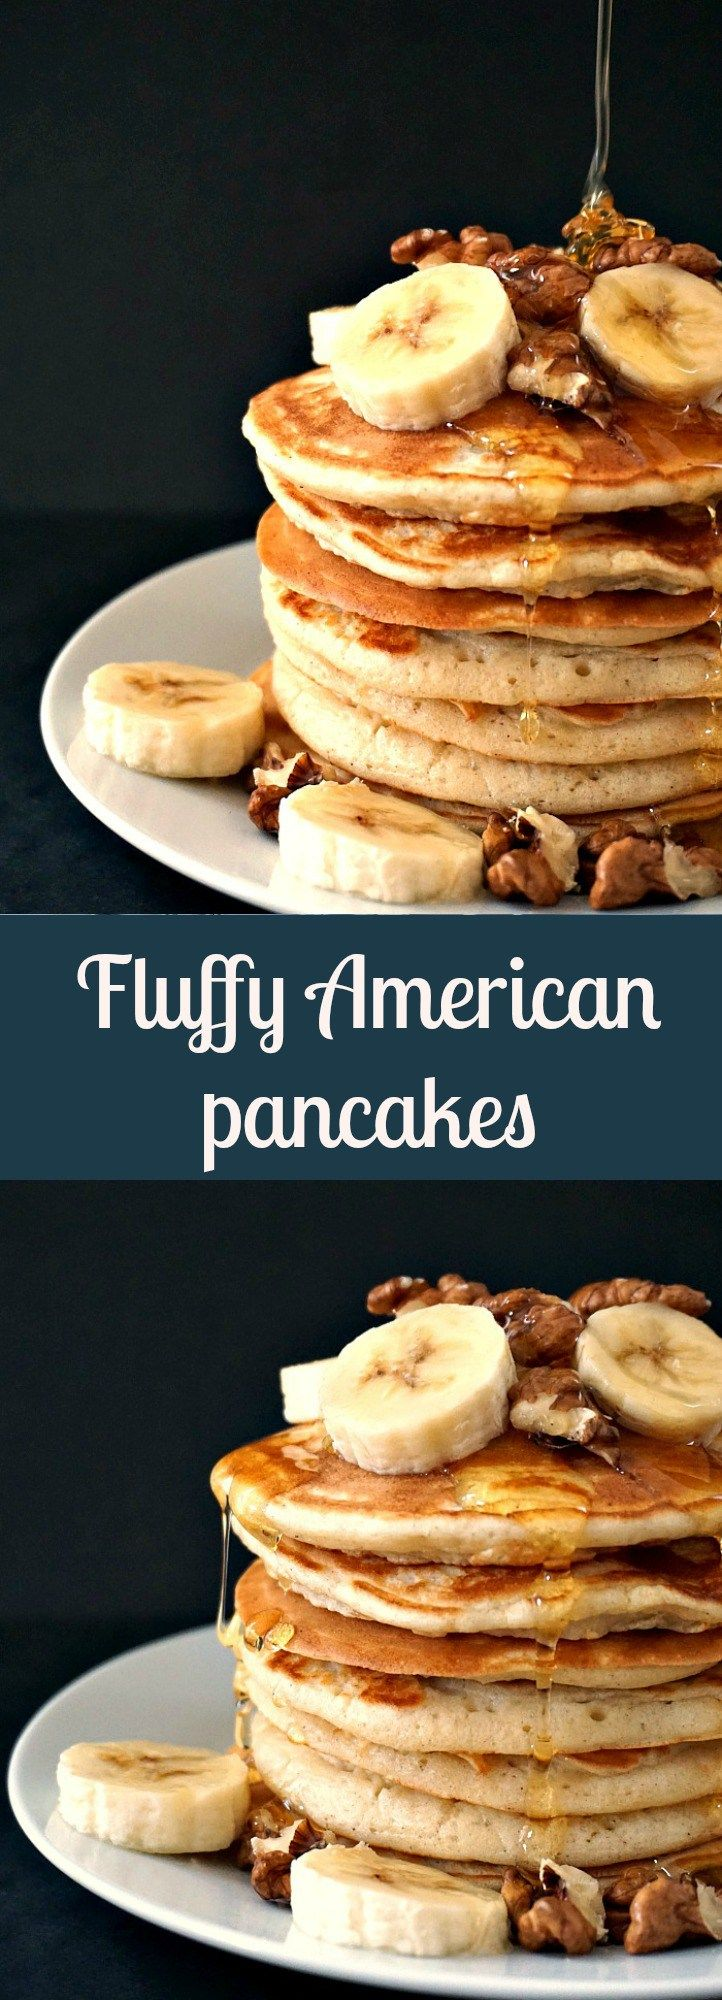 Fluffy American Pancakes with bananas, walnuts and a good squeeze of honey, an amazing breakfast recipe to start your day in style.